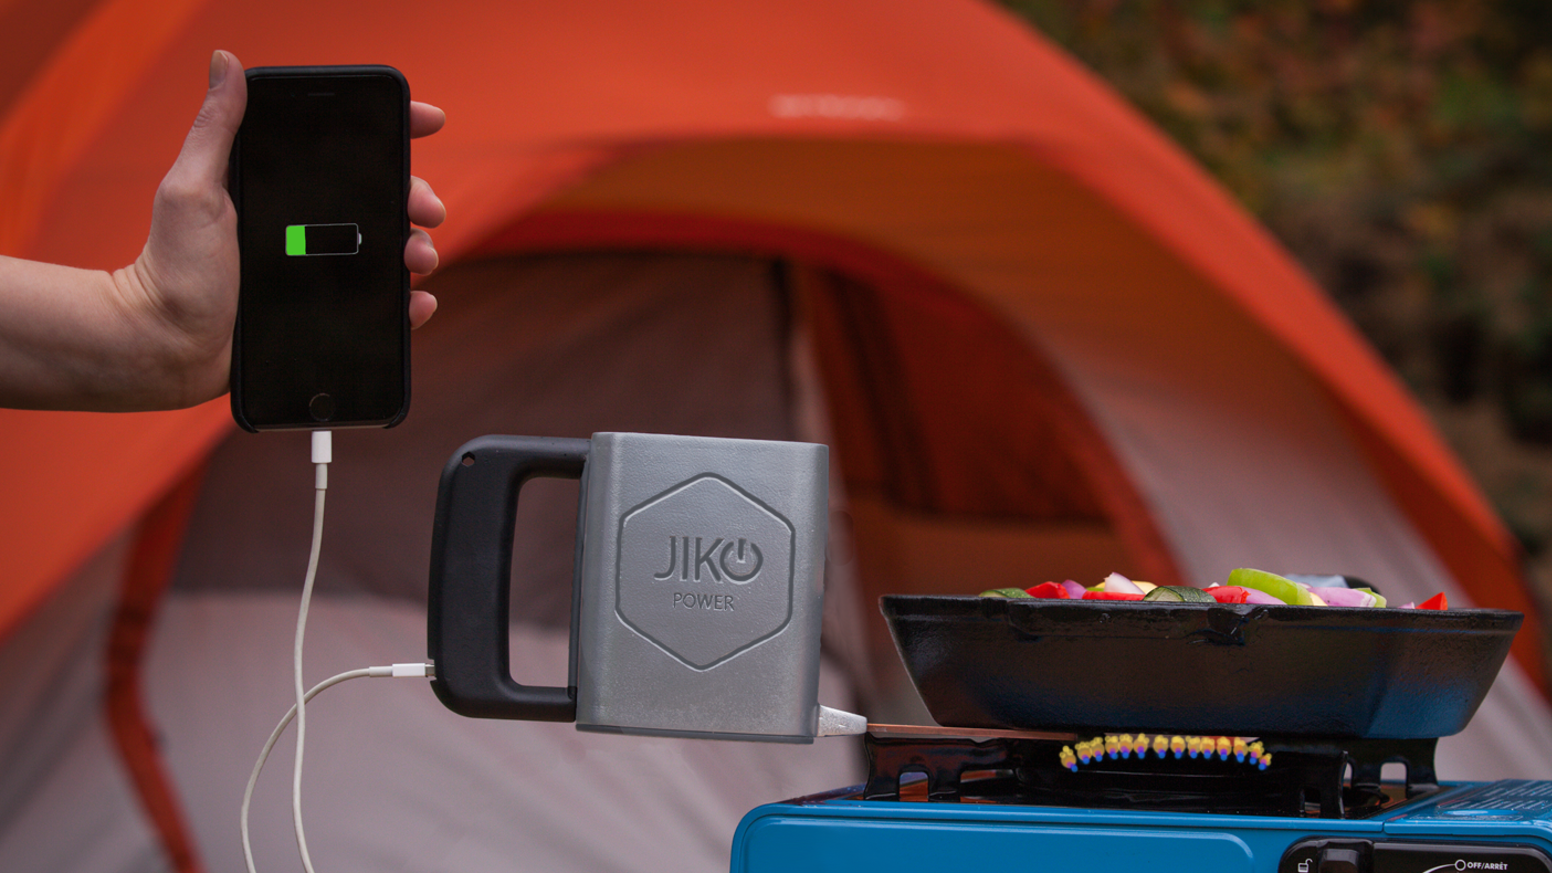 Jiko Spark uses heat to charge cell phones & USB devices. For Emergencies, Disaster Prep, Camping or Donate Sparks to your charity.